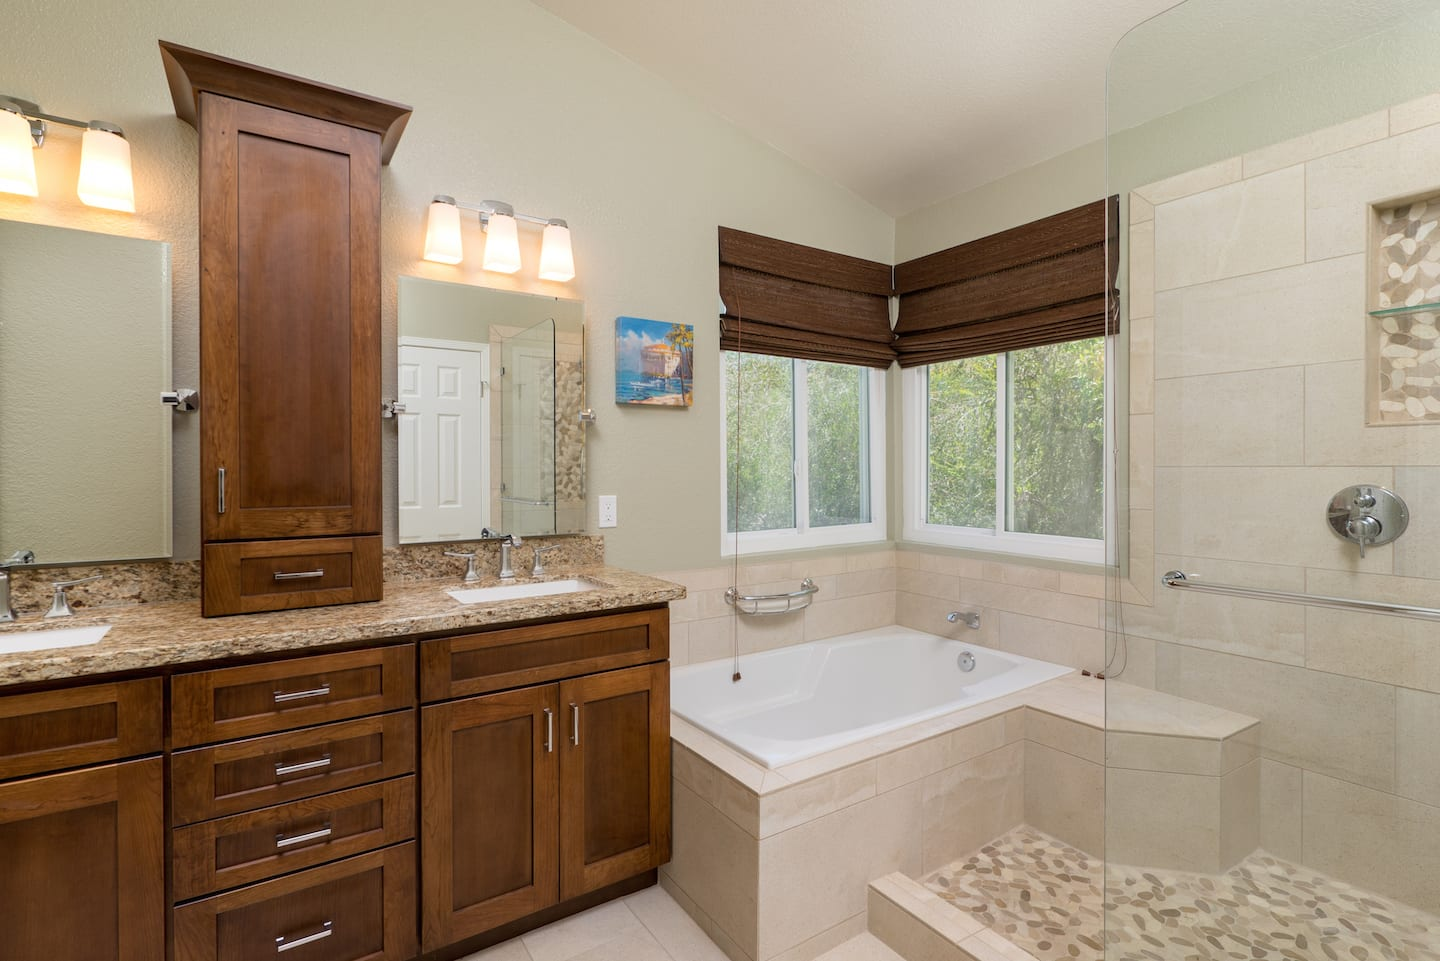 Bathroom Remodel With Tub bathroom remodeling - planning and hiring | angie's list